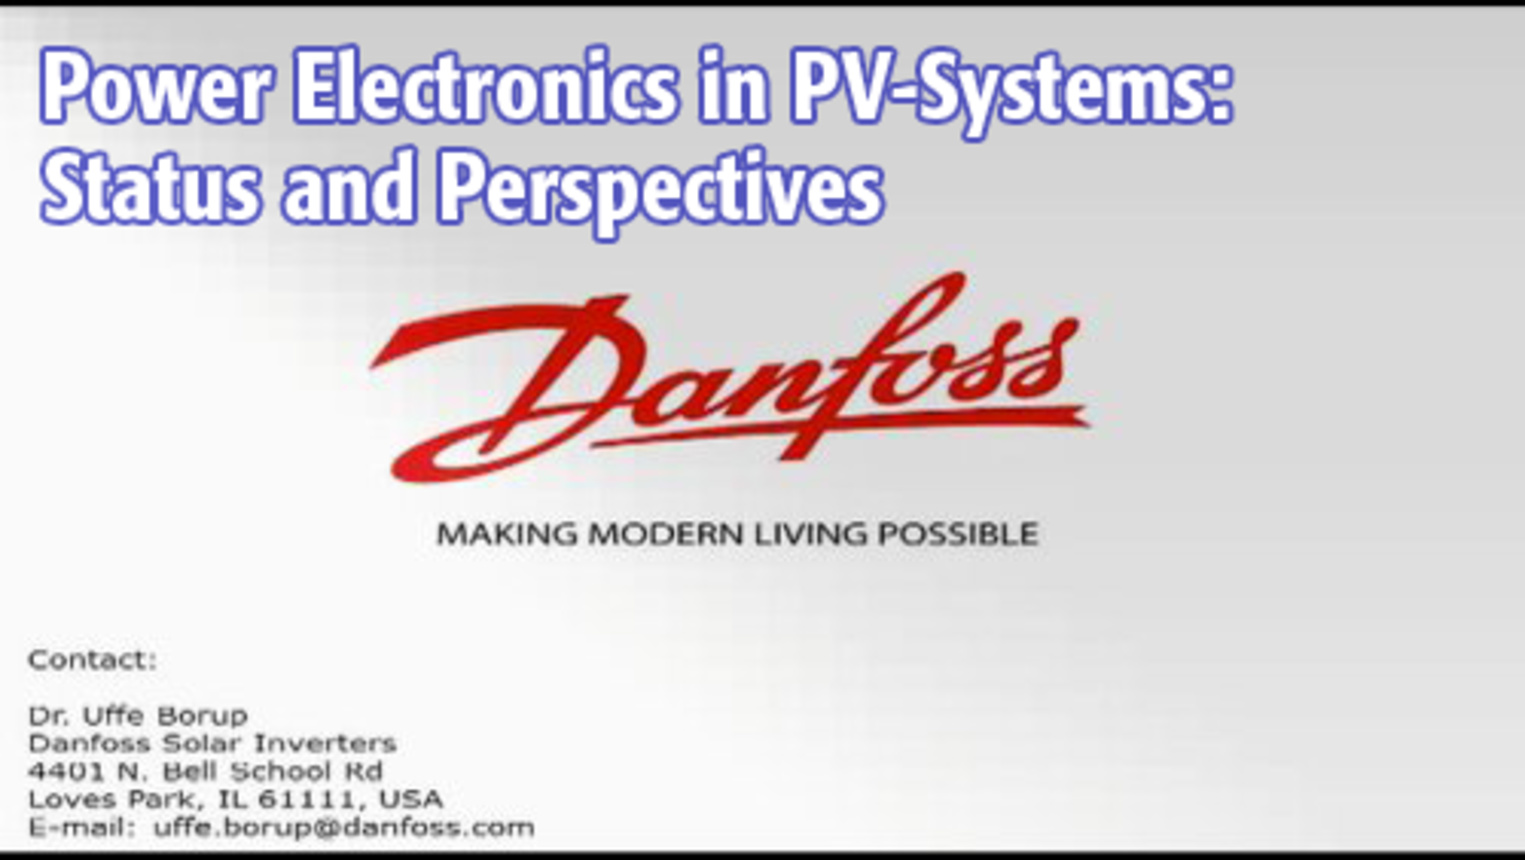 Power Electronics in PV-Systems: Status and Perspectives